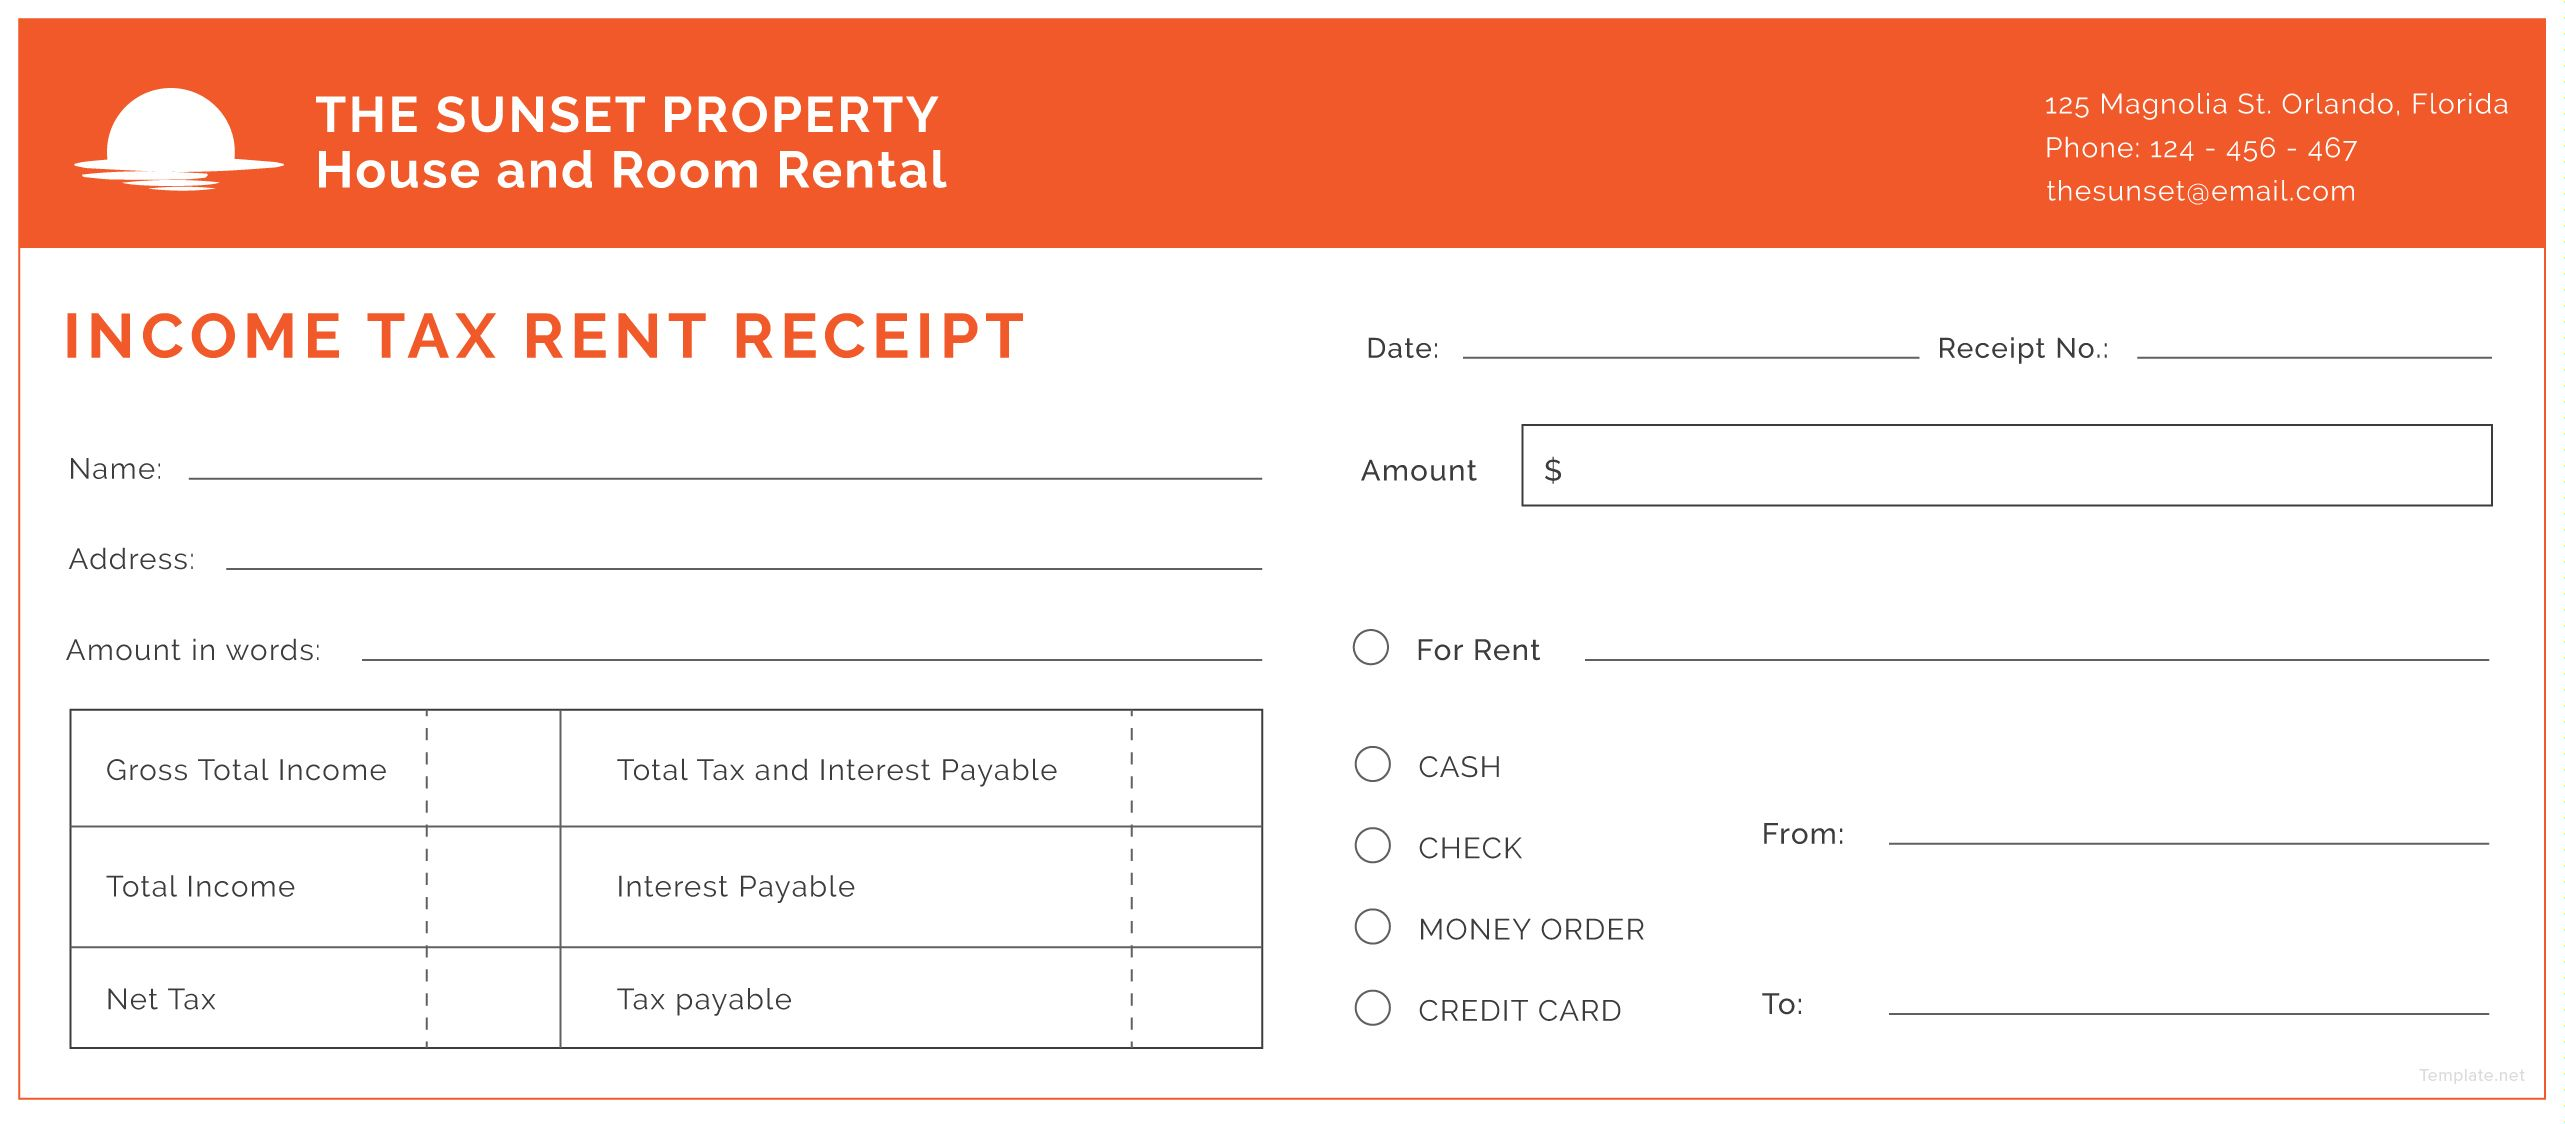 Free Rent Receipts Brilliant Download Income Tax Rent Receipt Template For Free In Illustrator .